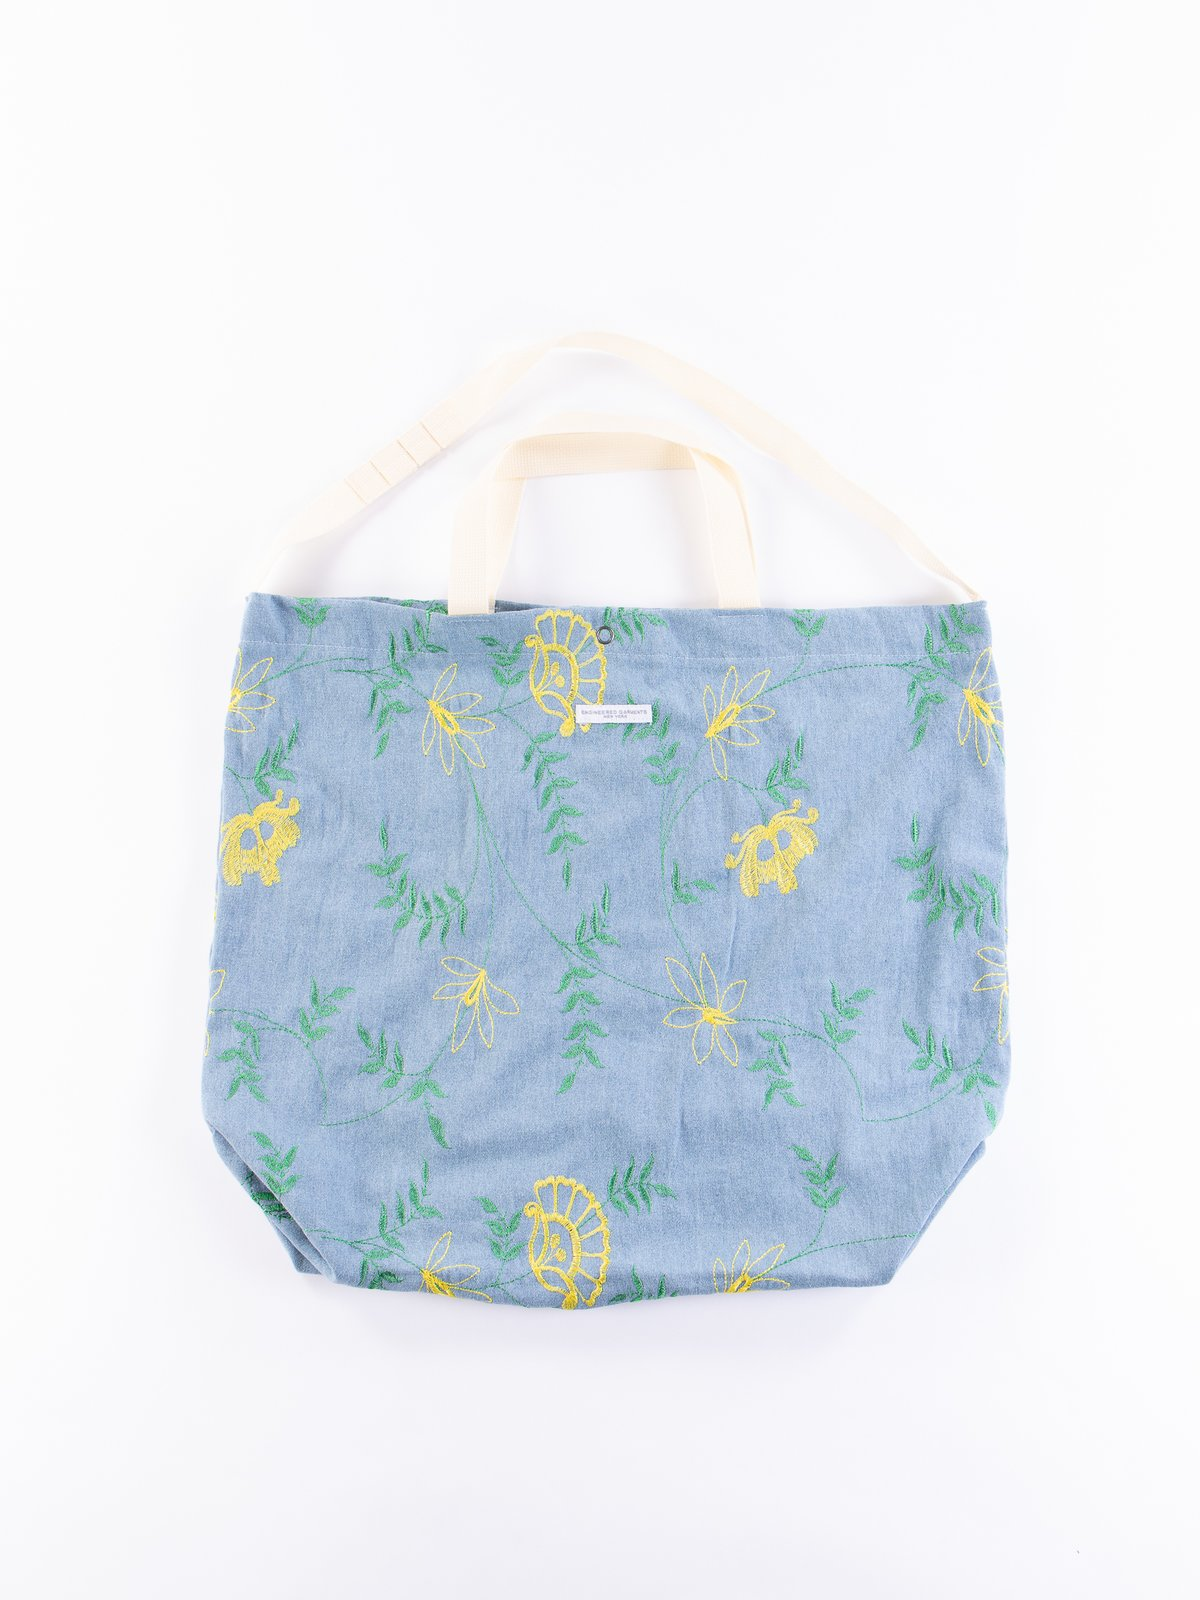 Light Blue Denim Floral Embroidery Carry All Tote - Image 1